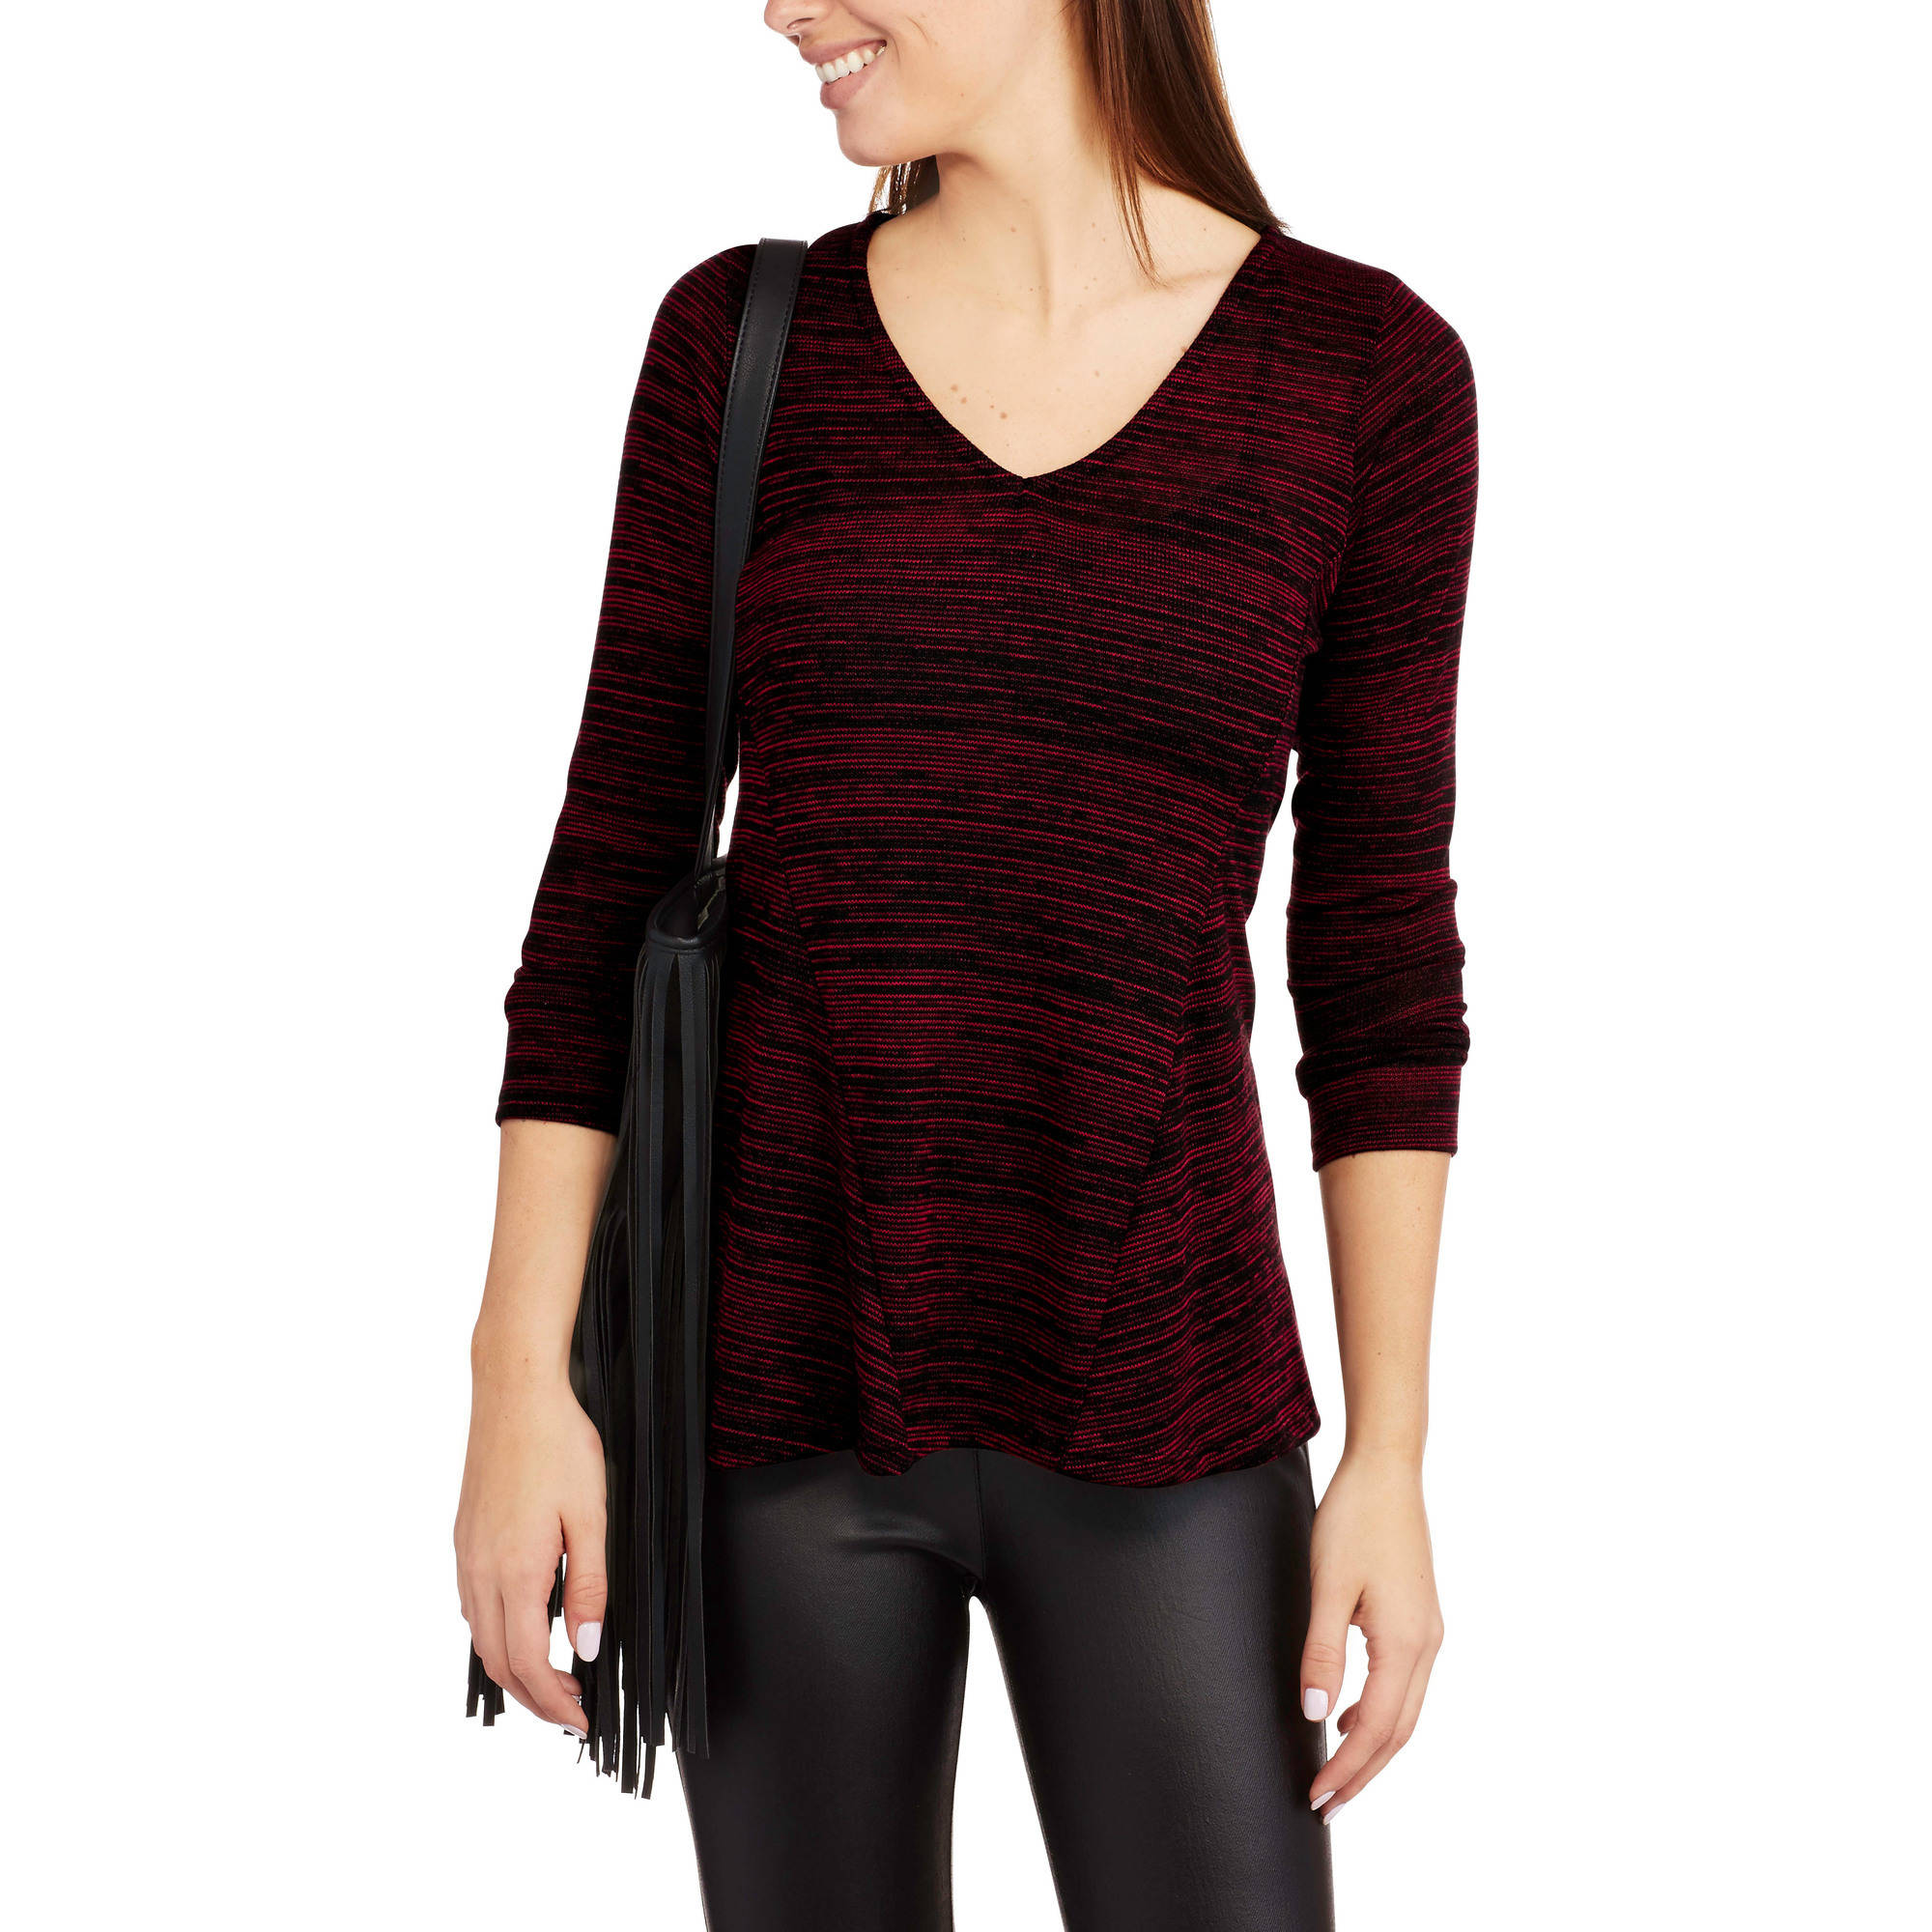 Always Grace Women's V-Neck Paneled Sweater Knit Top